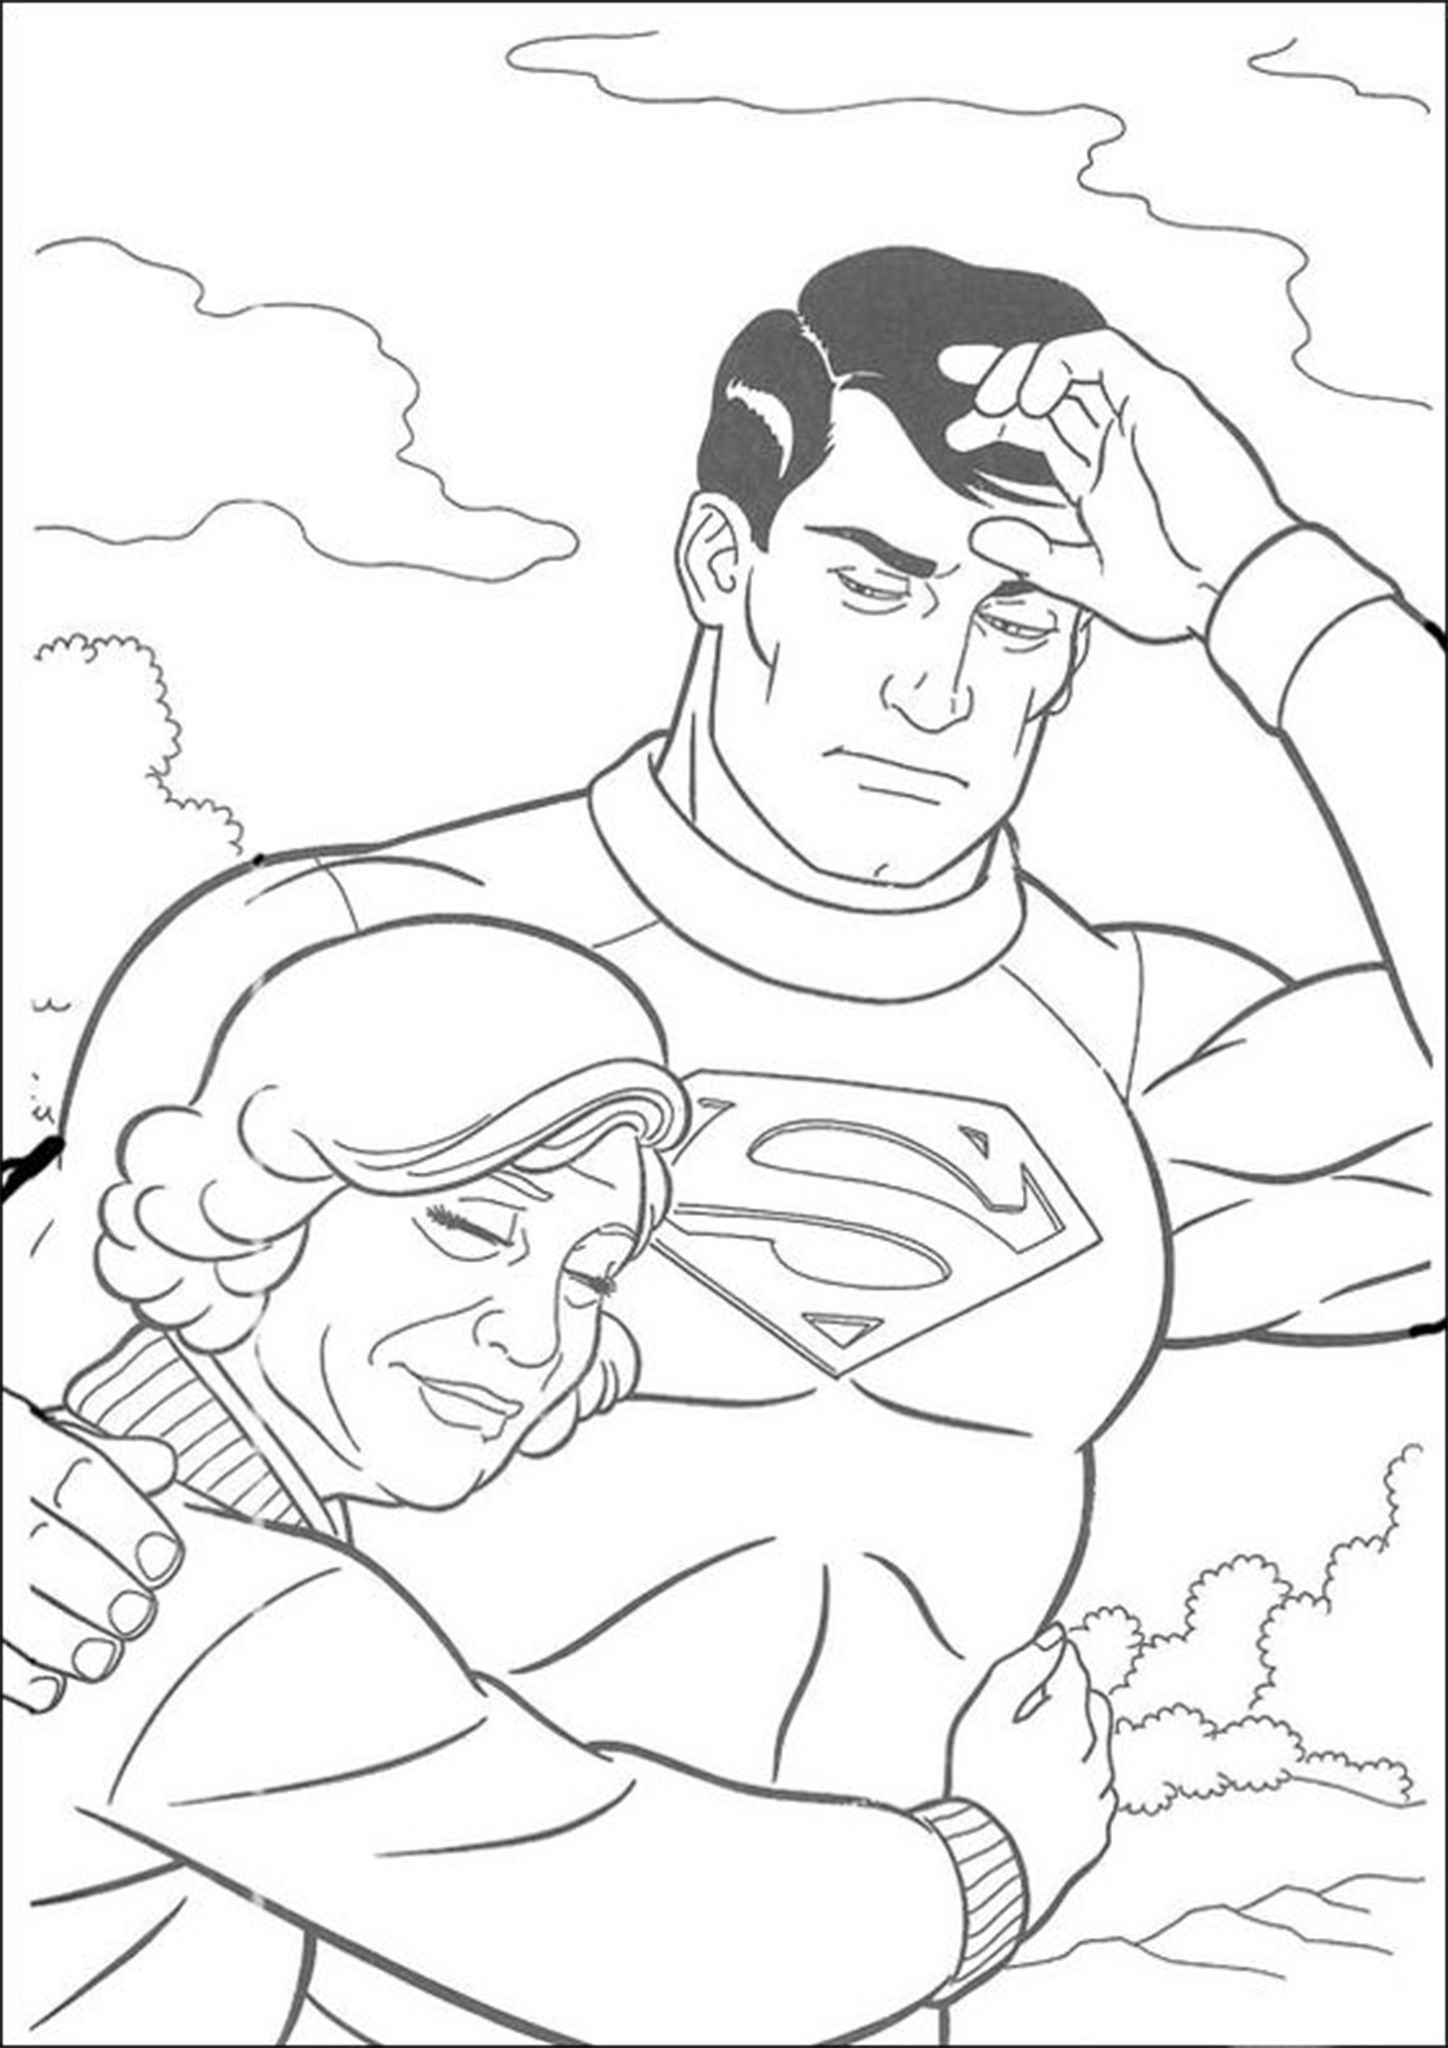 superman free coloring pages coloring pages for kids top 15 superman coloring pages for pages superman free coloring